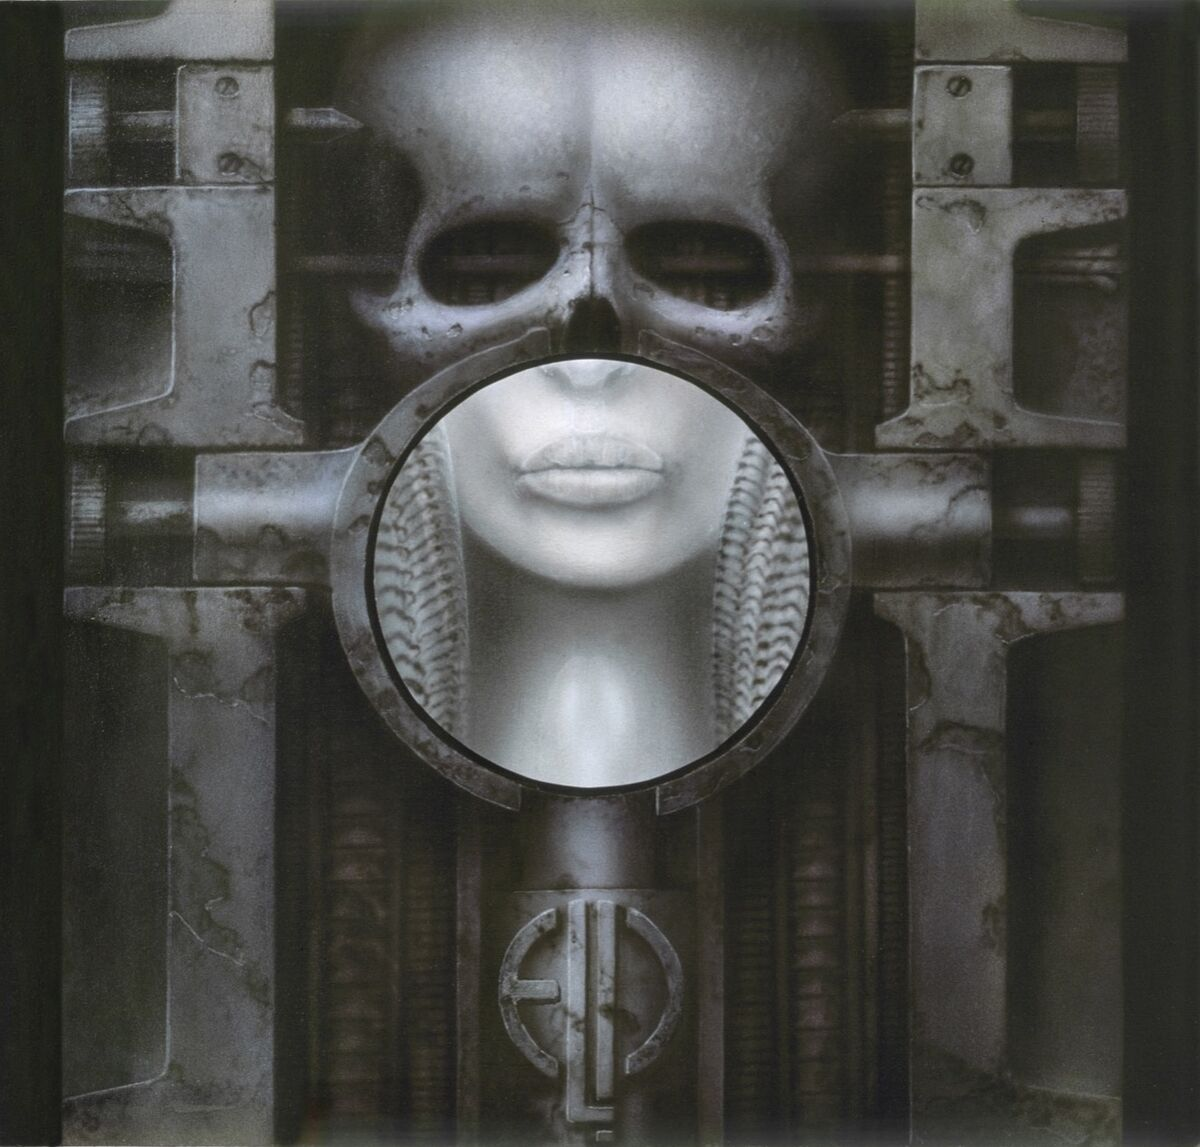 H.R. Giger, ELP II (Brain Salad Surgery), 1973. Courtesy of the H.R. Giger Museum.